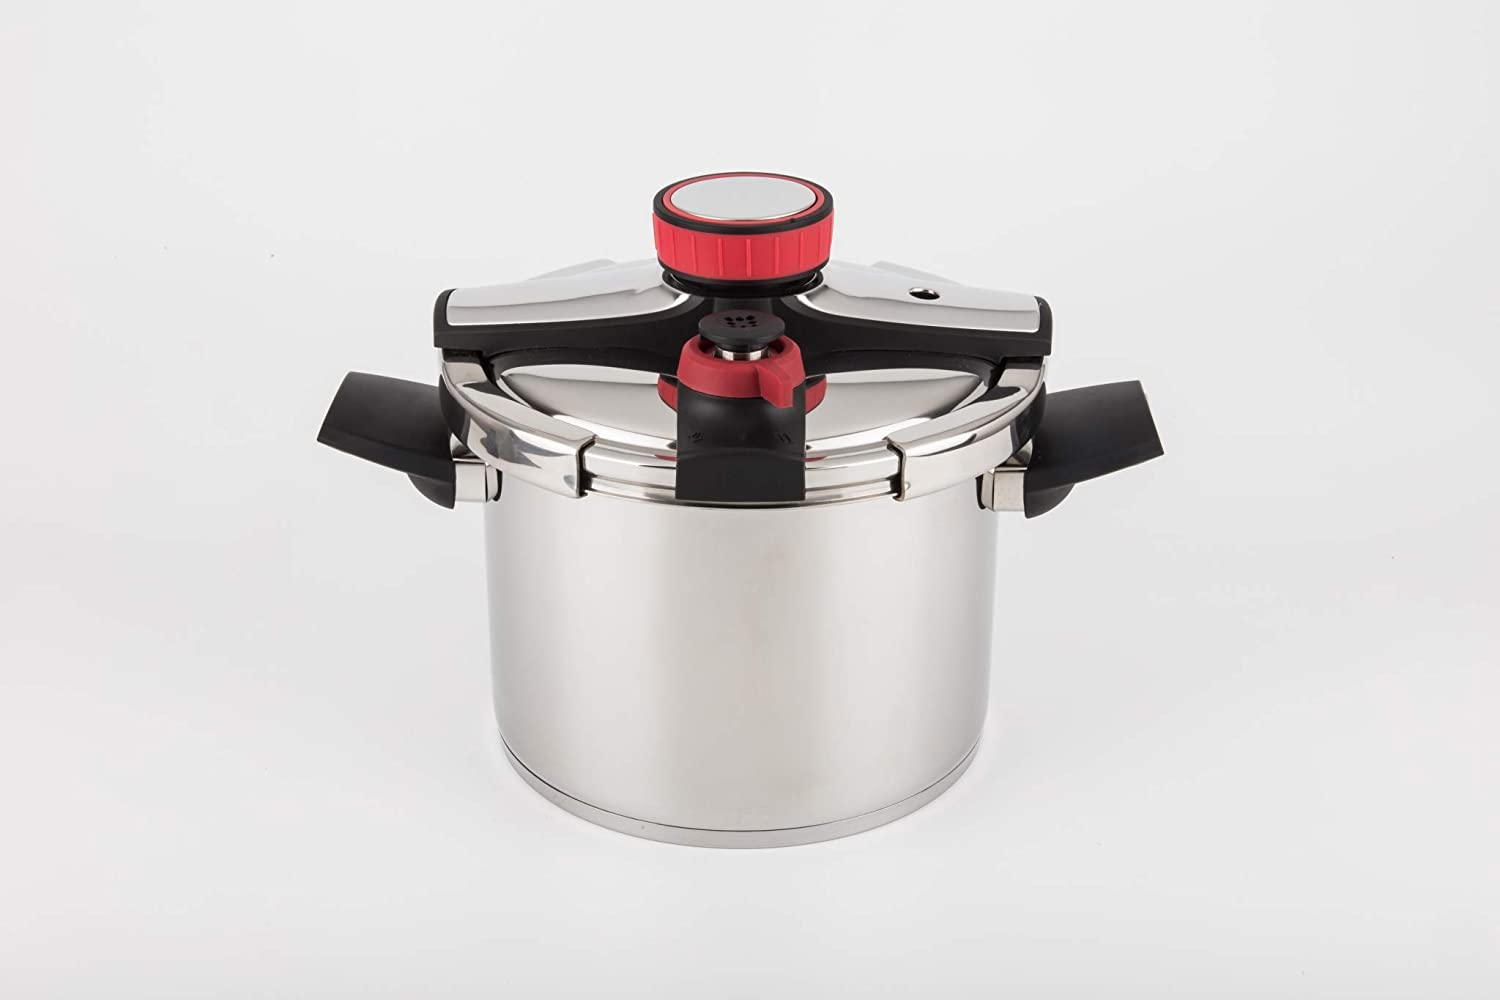 Stainless steel pressure cooker cookware Fast pressure cooker Pot 6Liter /22CM Clipso Stainless steel Dishwasher safe